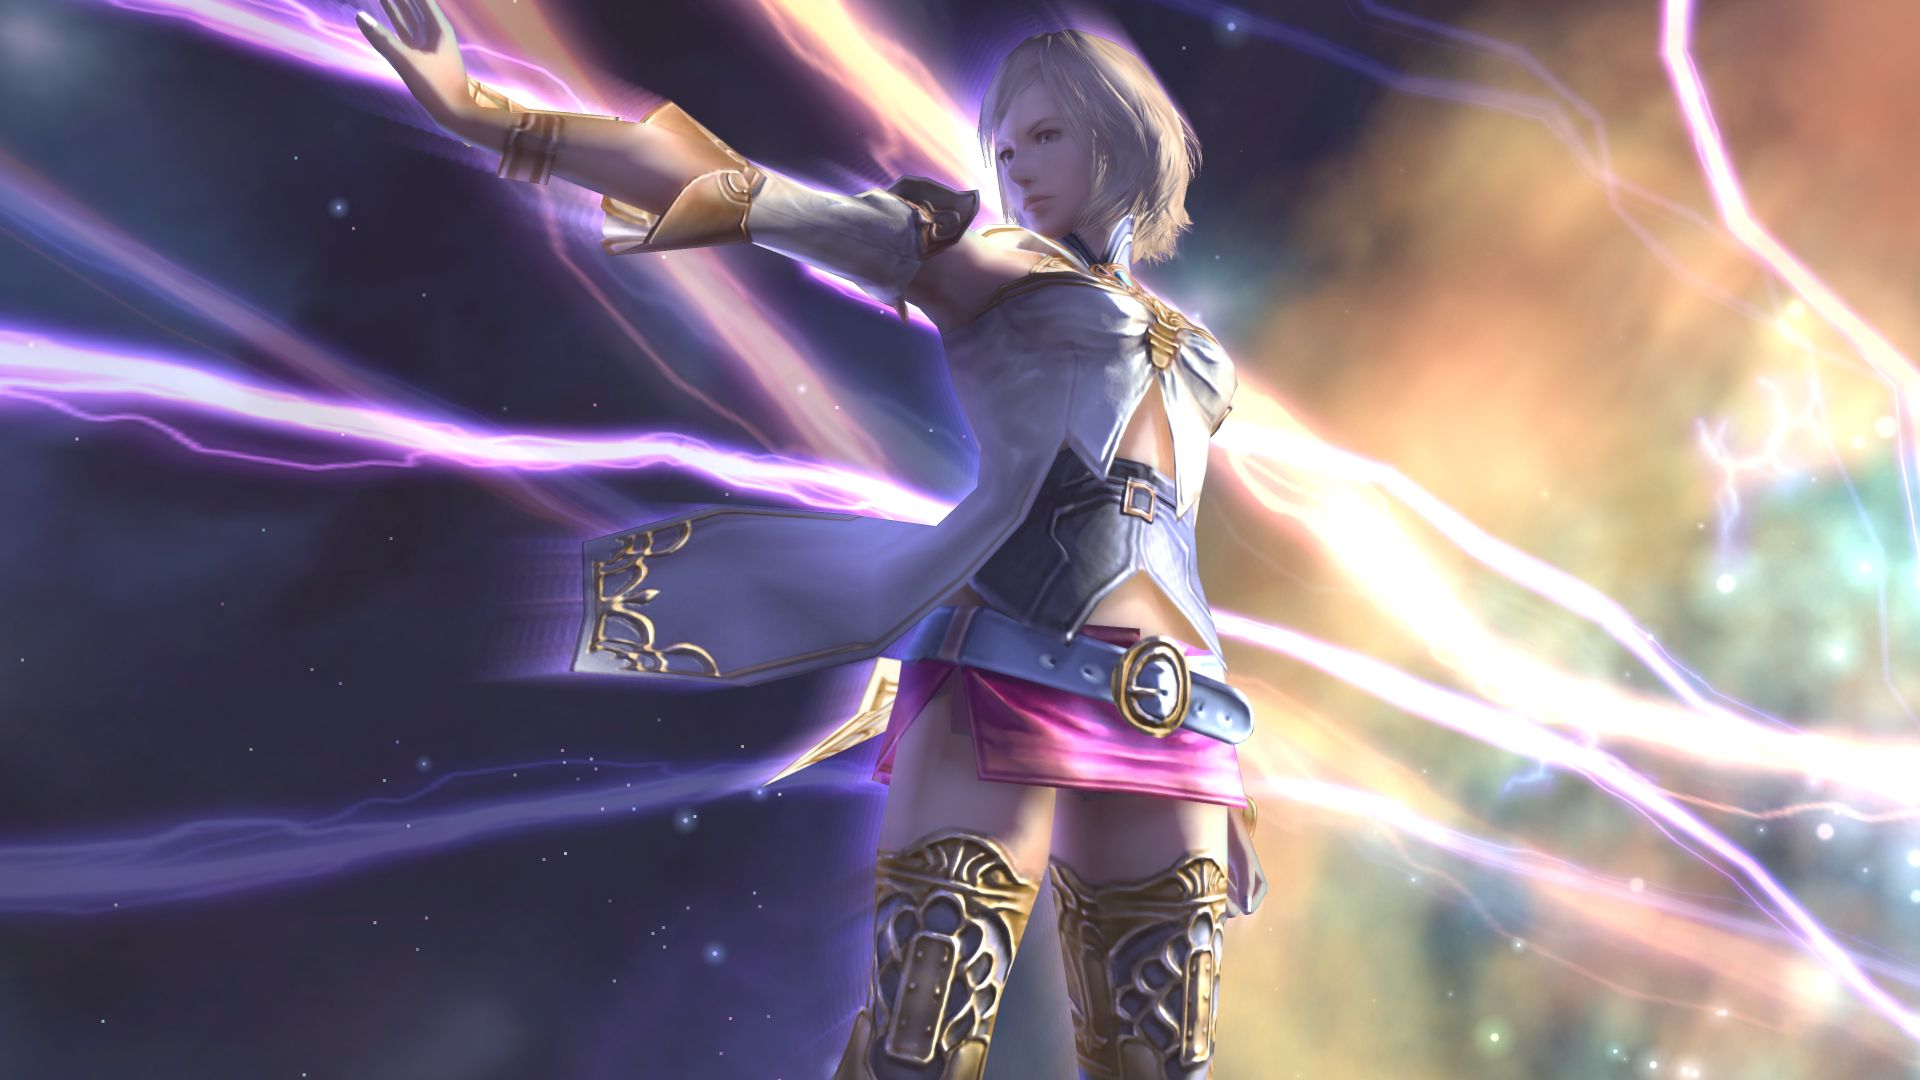 Final Fantasy 12 The Zodiac Age Hits Pc Next Month With 60fps